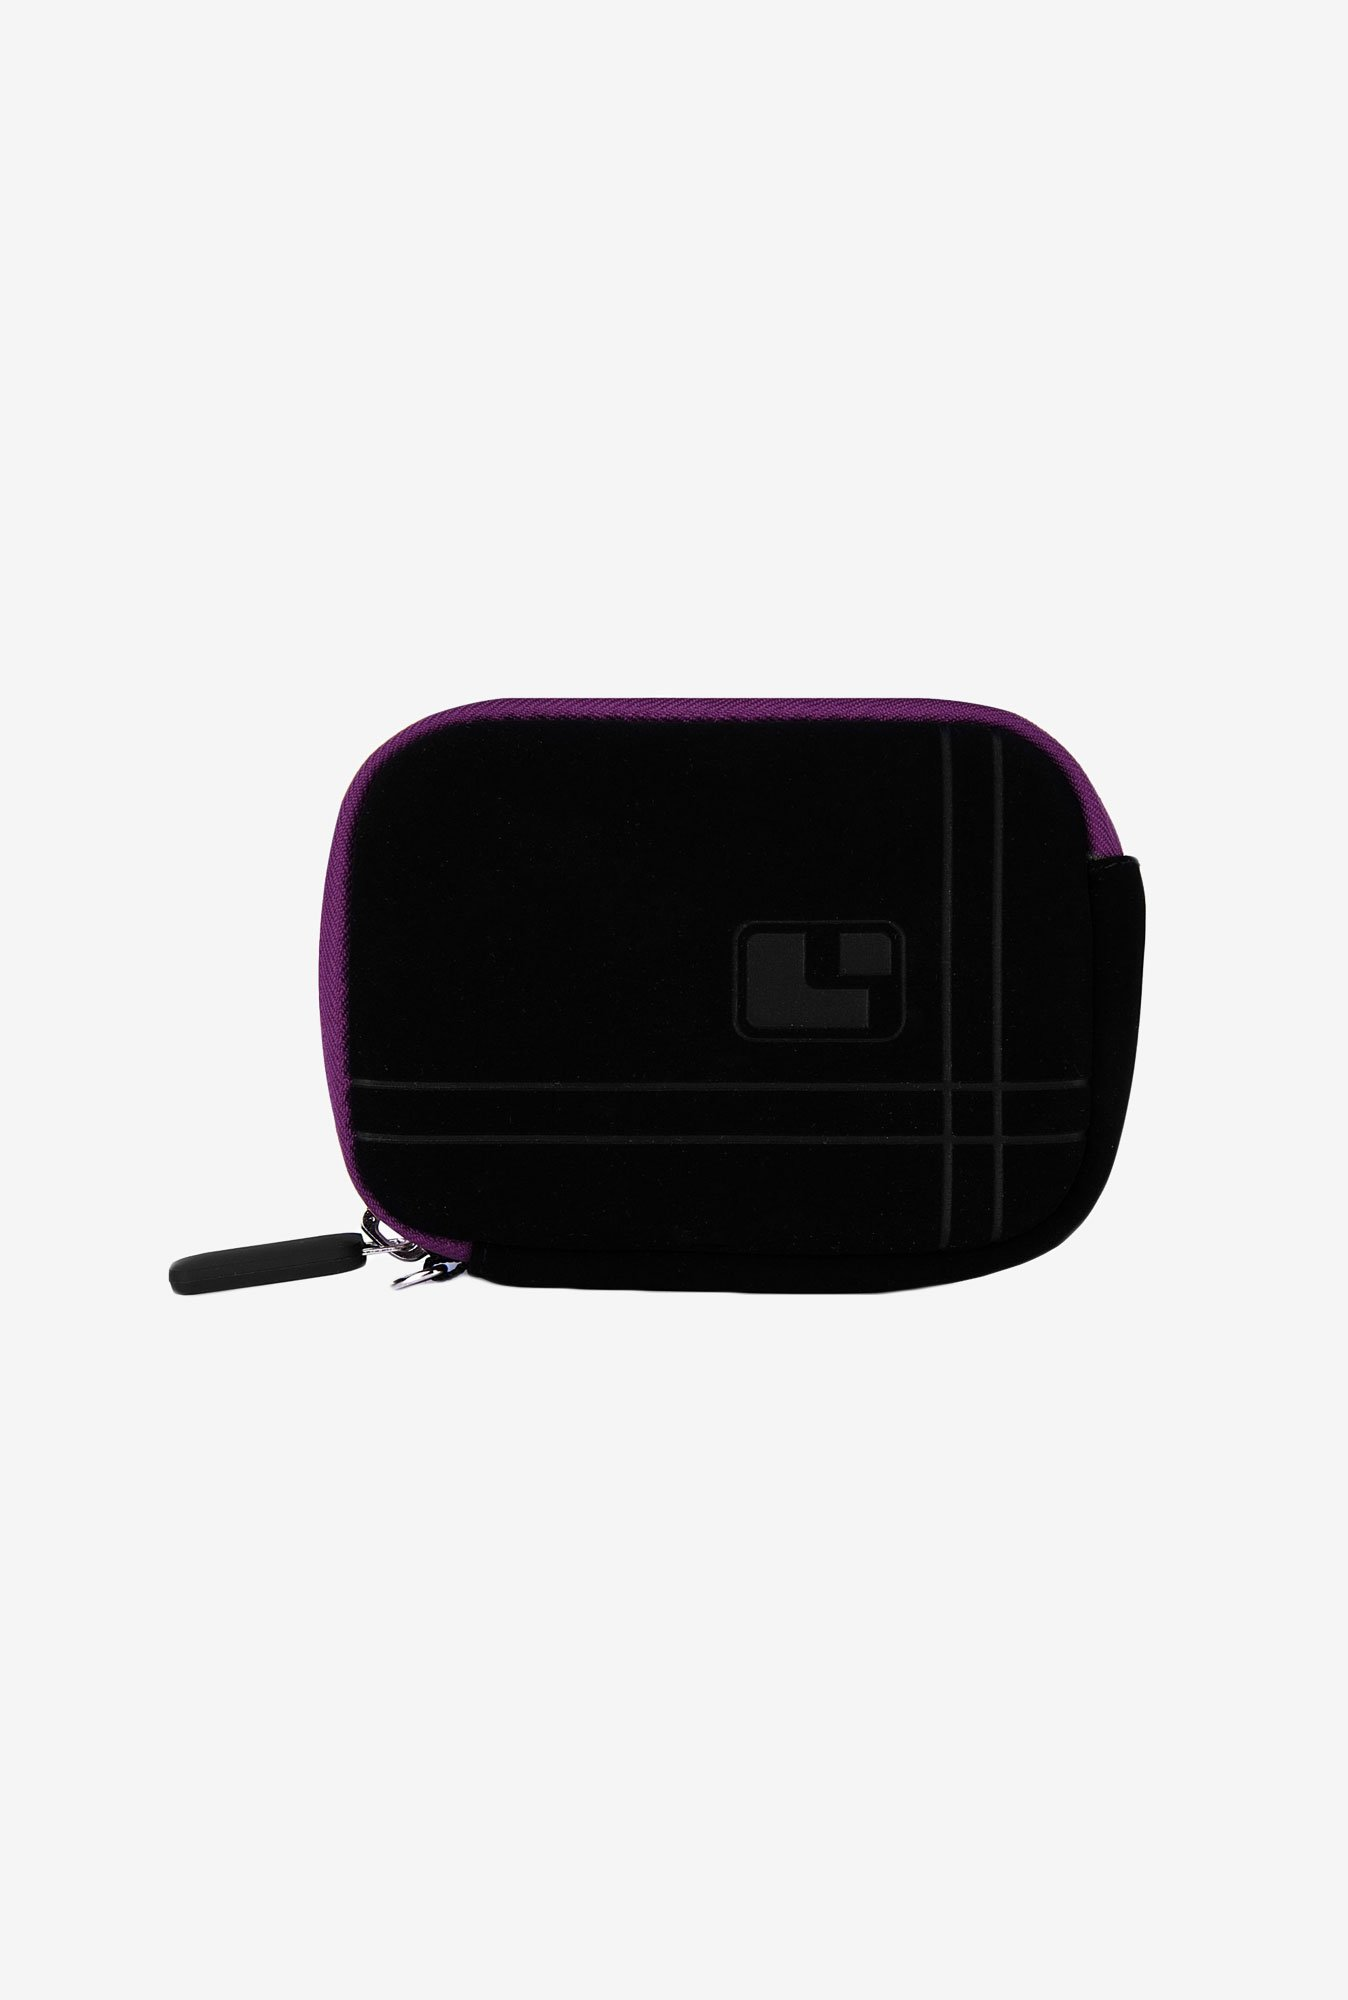 SumacLife SLMicroFPUP Microfiber Camera Case (Purple)